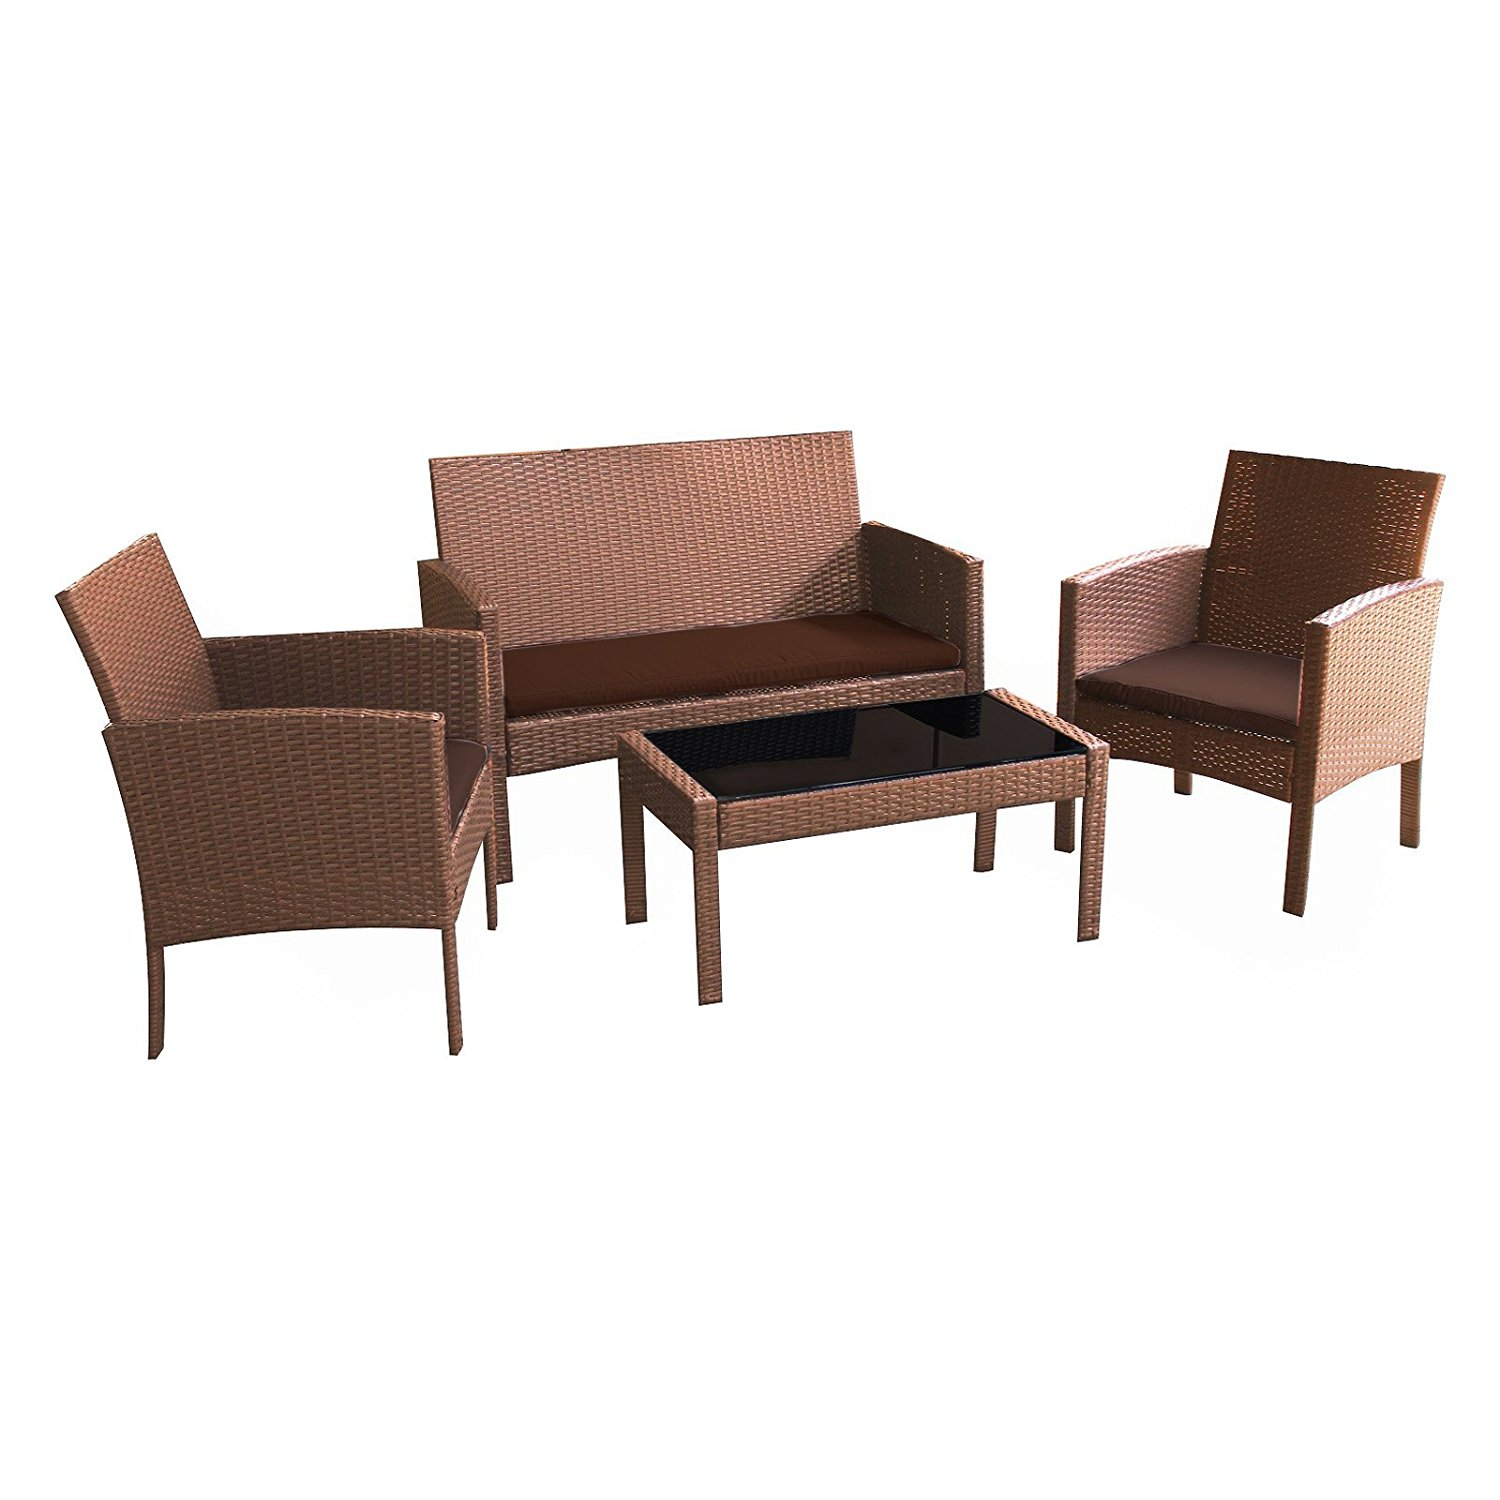 Best Furniture Products By J&j Furniture: Cb2 Furniture | J&j Furniture | Woodard Patio Furniture